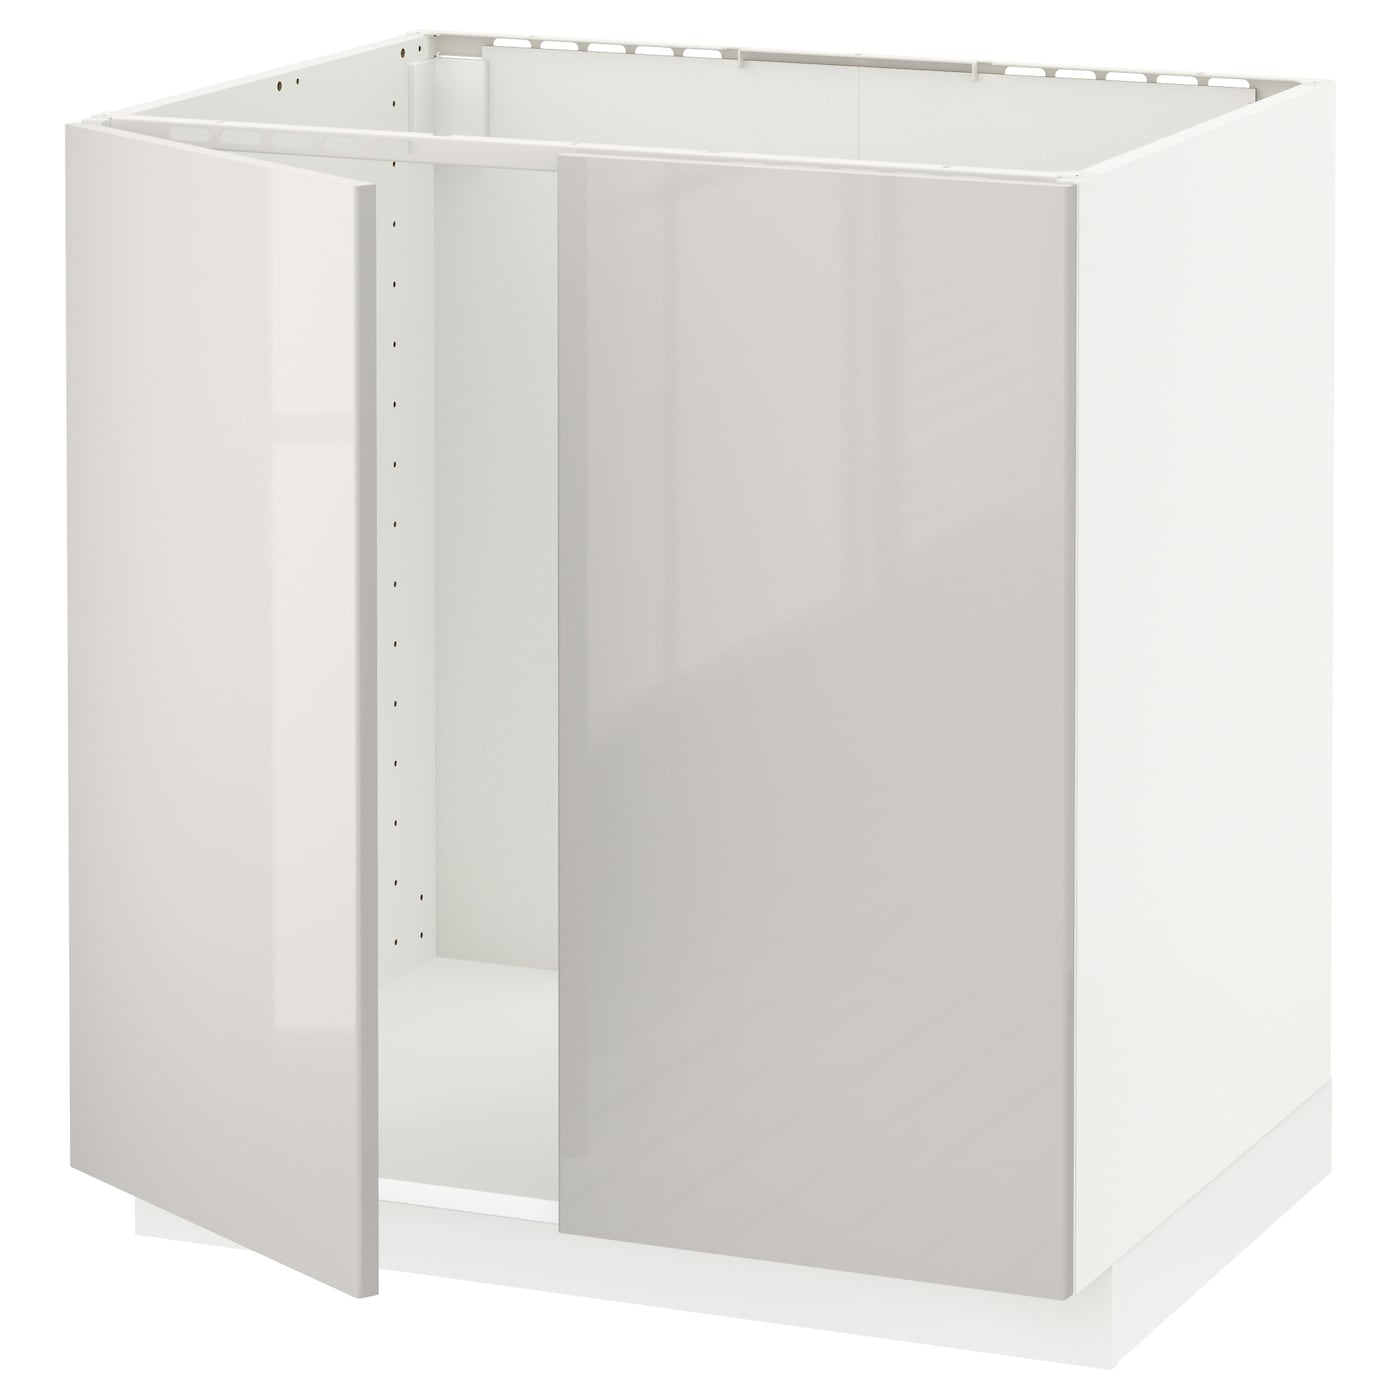 Ikea Kitchen Cabinet Lighting: METOD Base Cabinet For Sink + 2 Doors White/ringhult Light